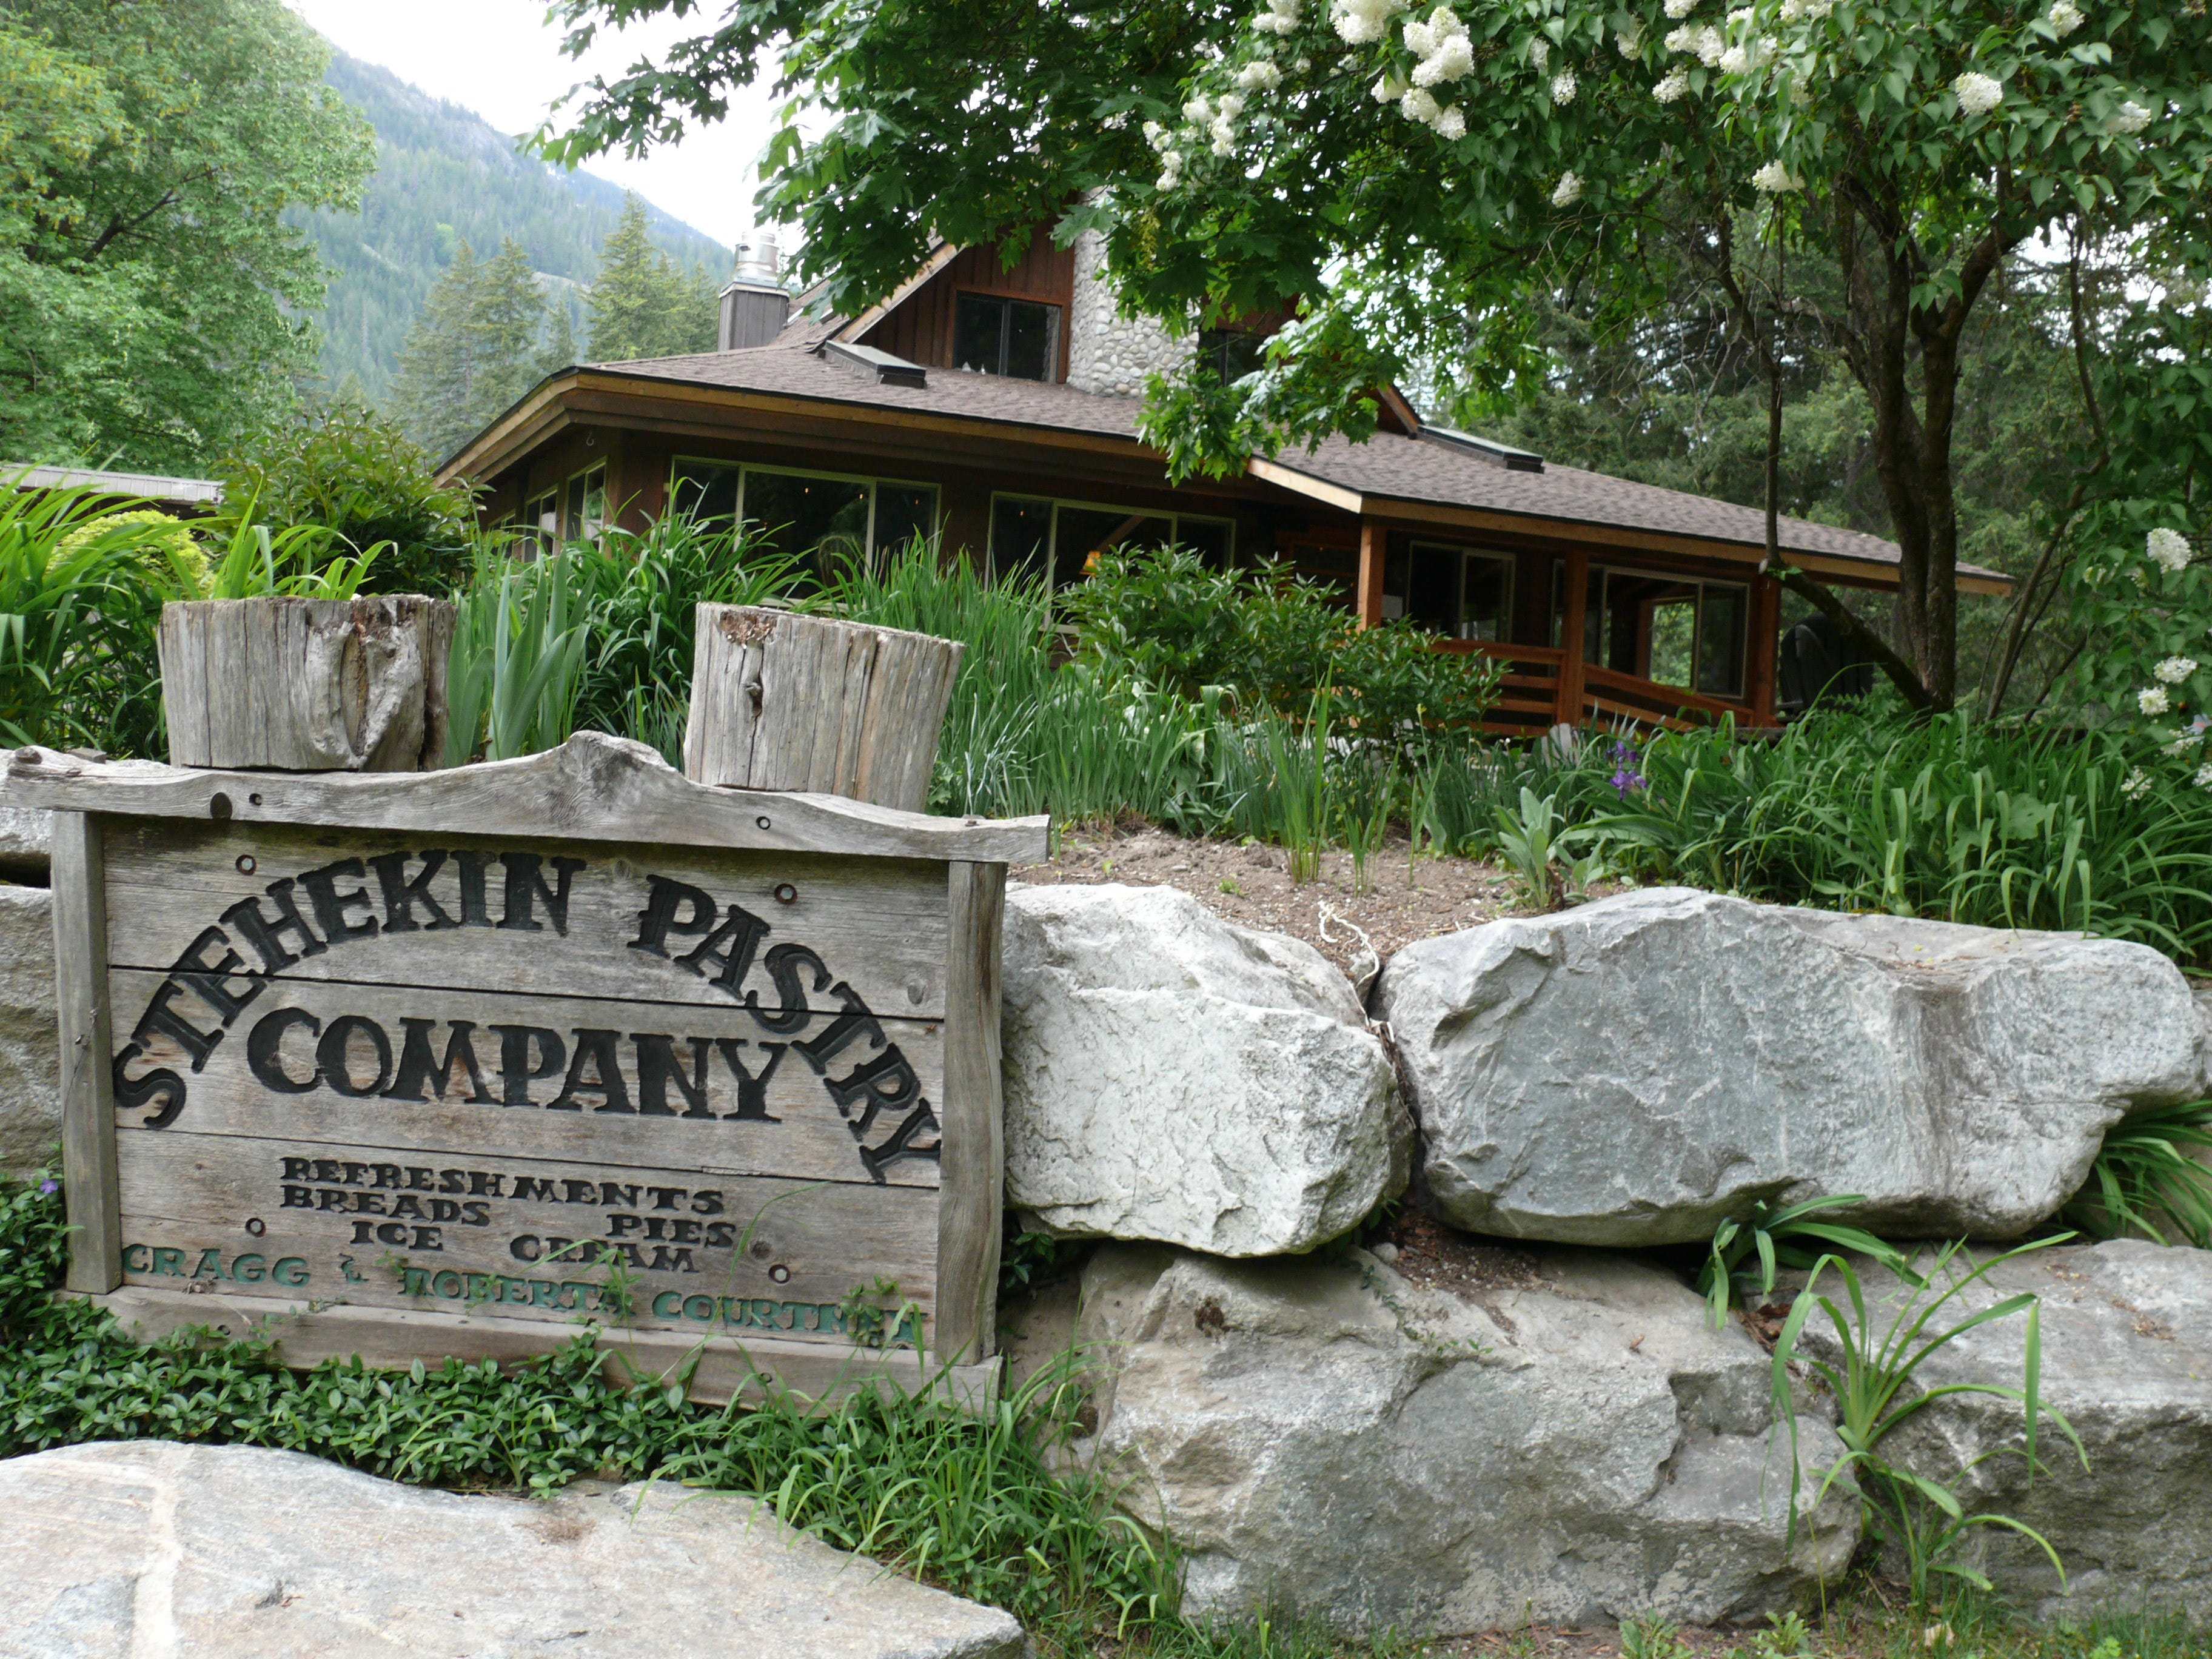 Want an alpine getaway without leaving the US? Try Chelan, Washington